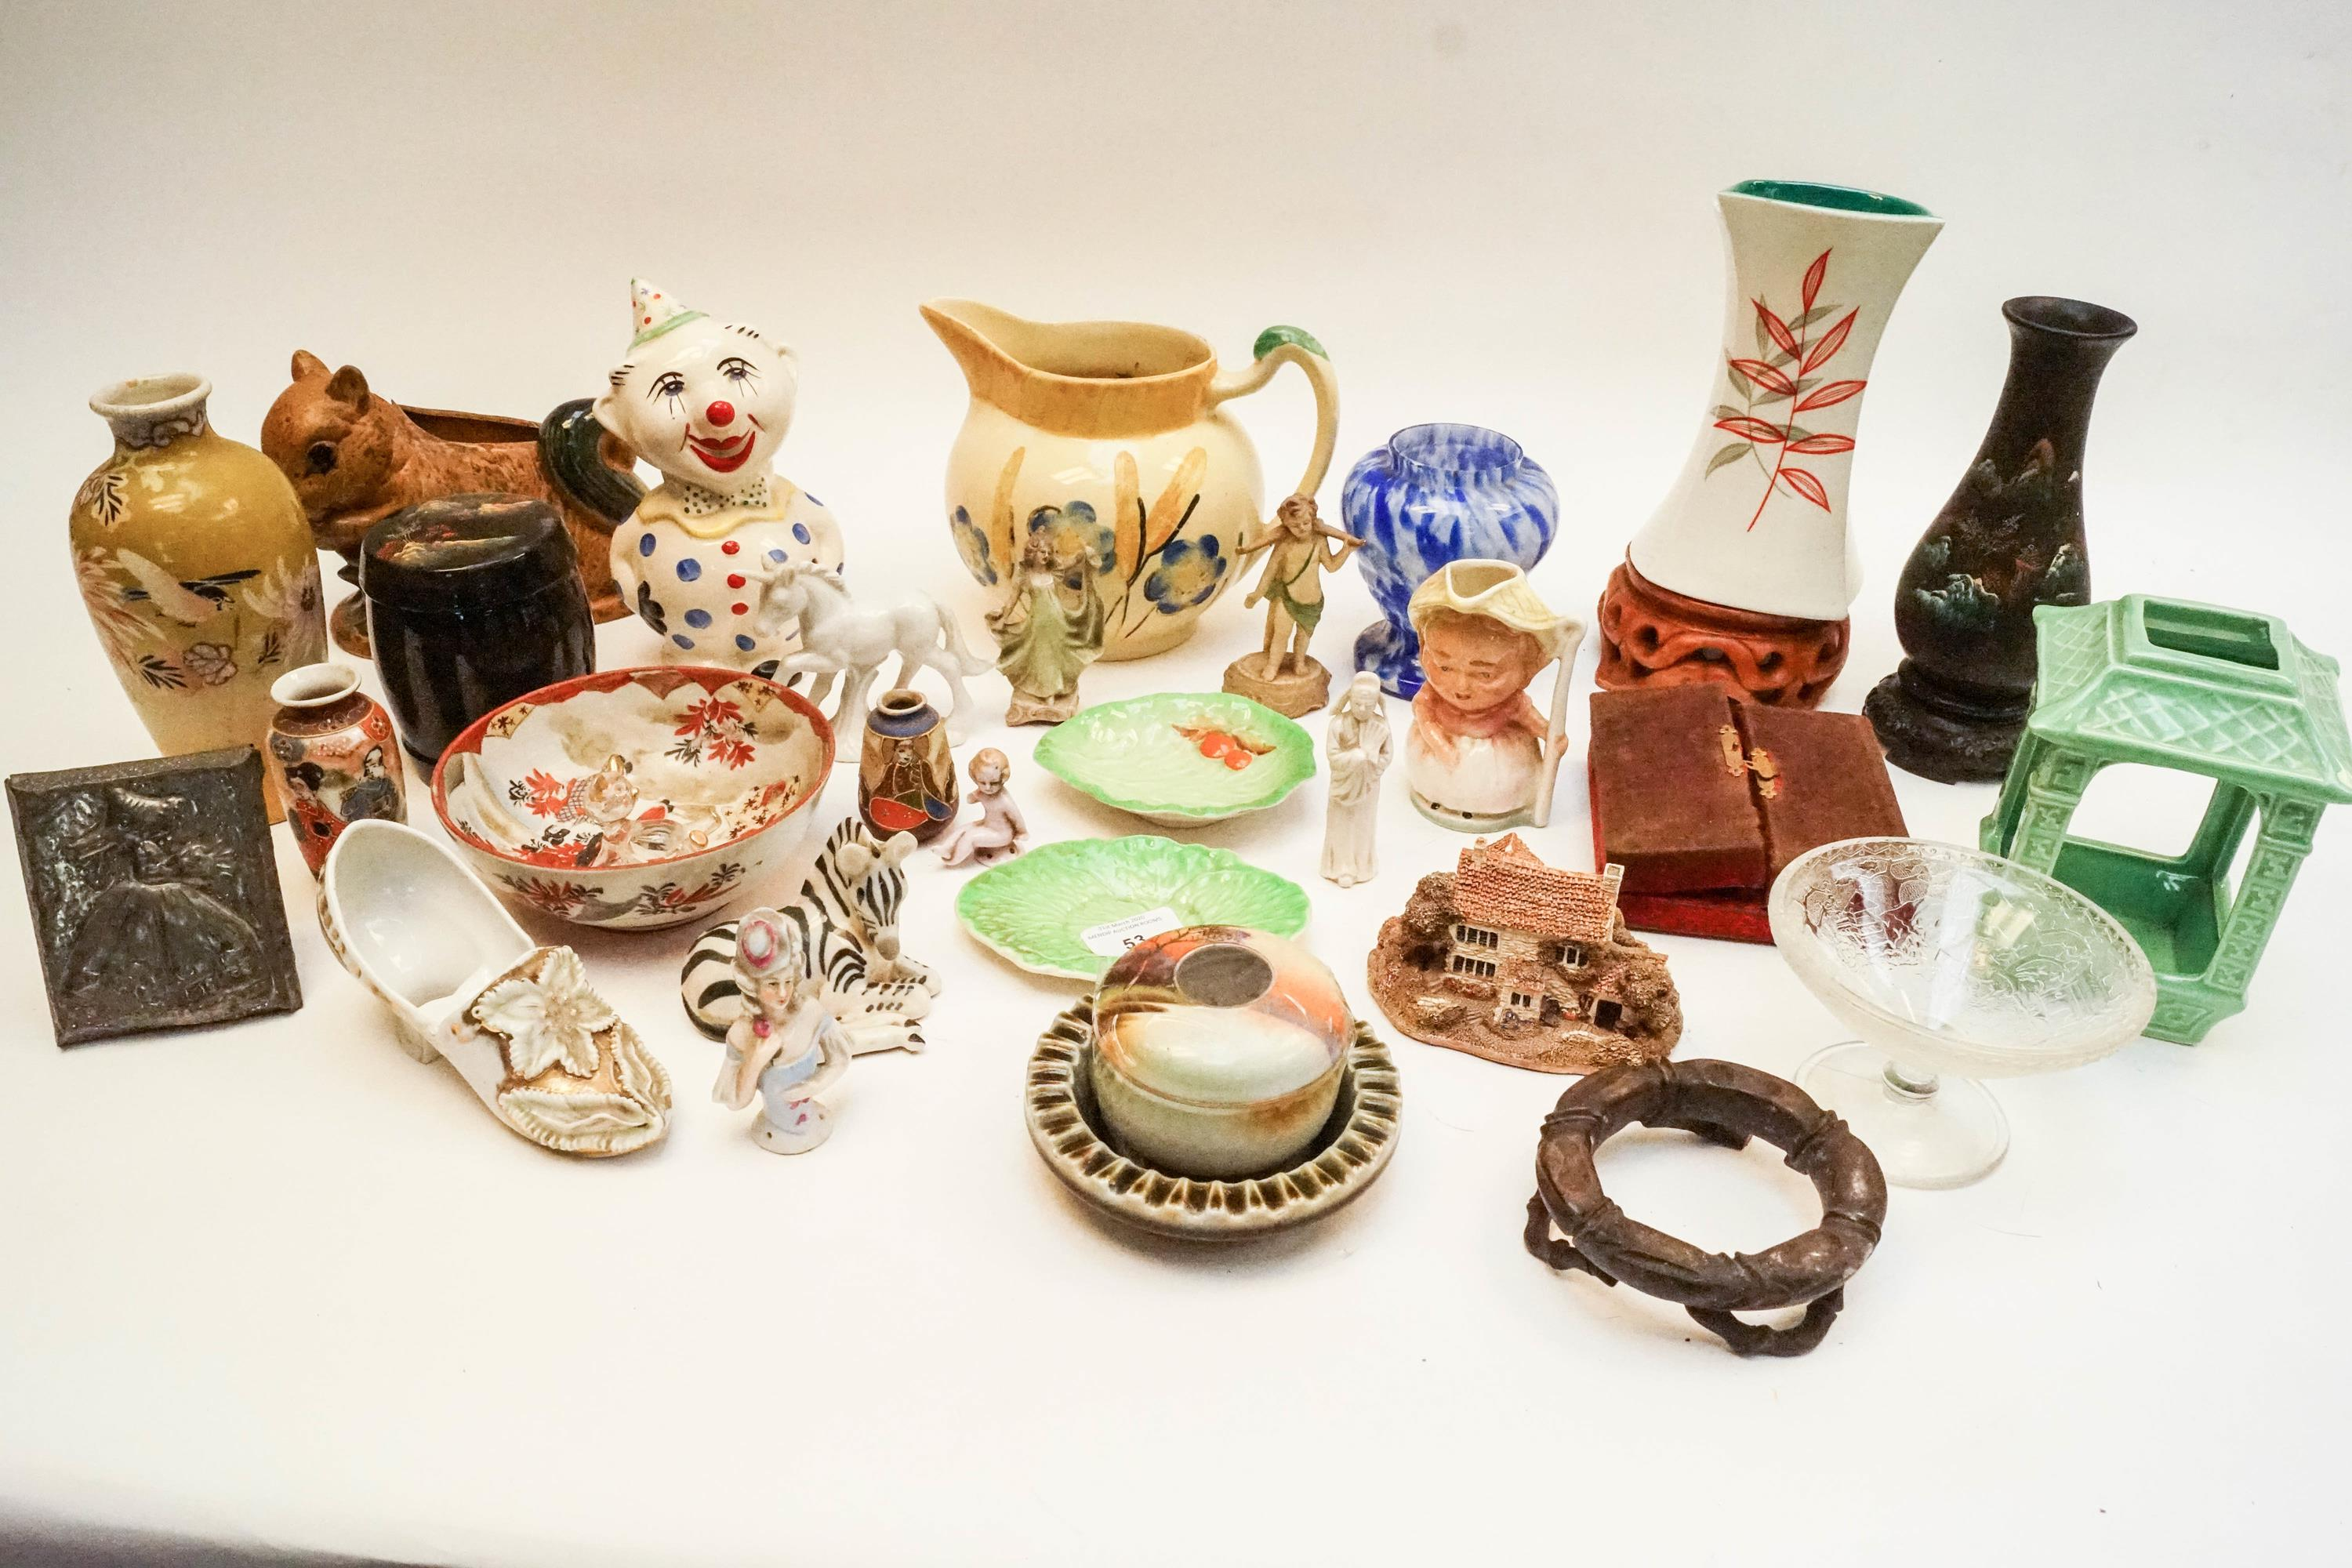 An Art Deco pottery shell vase and other items - Image 2 of 2